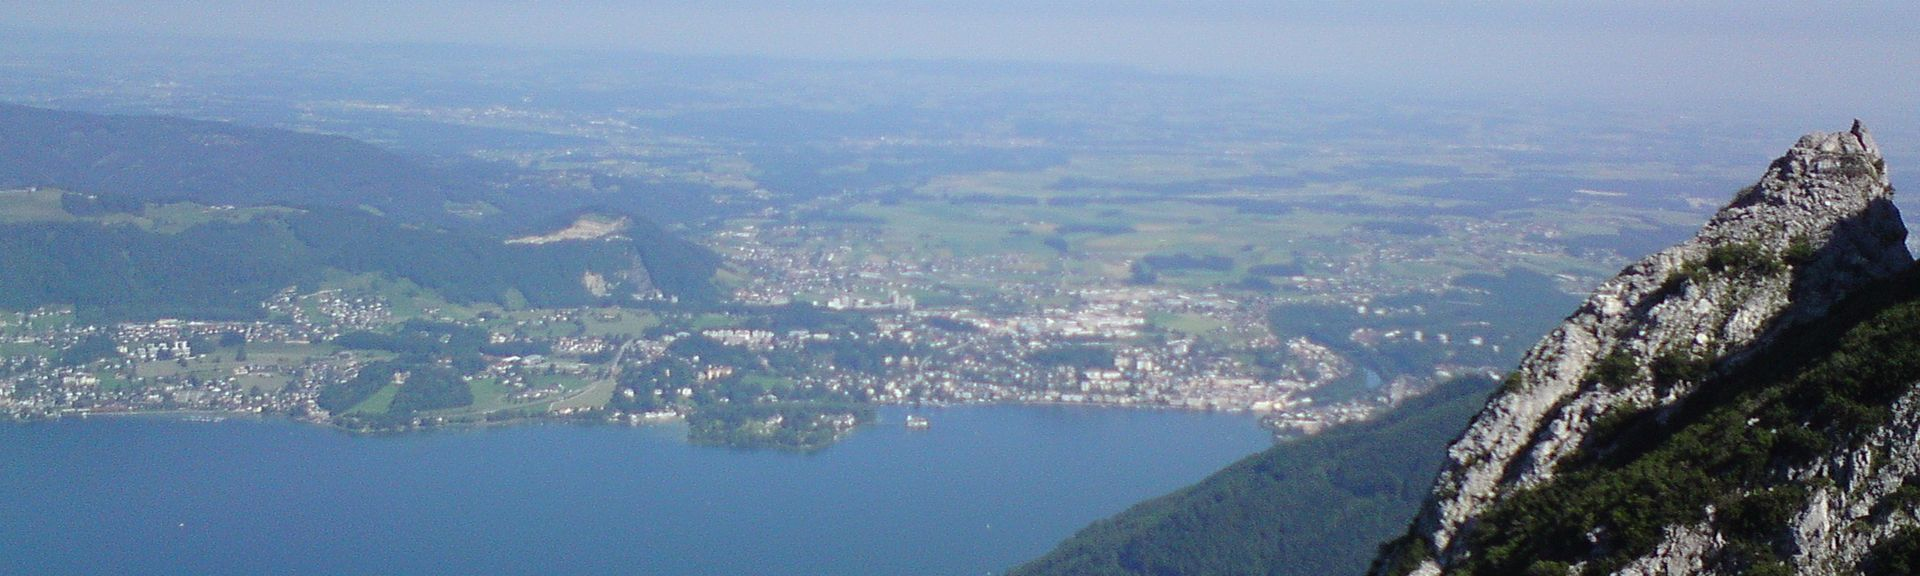 Dating gmunden dates and venue for the neurois retreat june 4-6 at